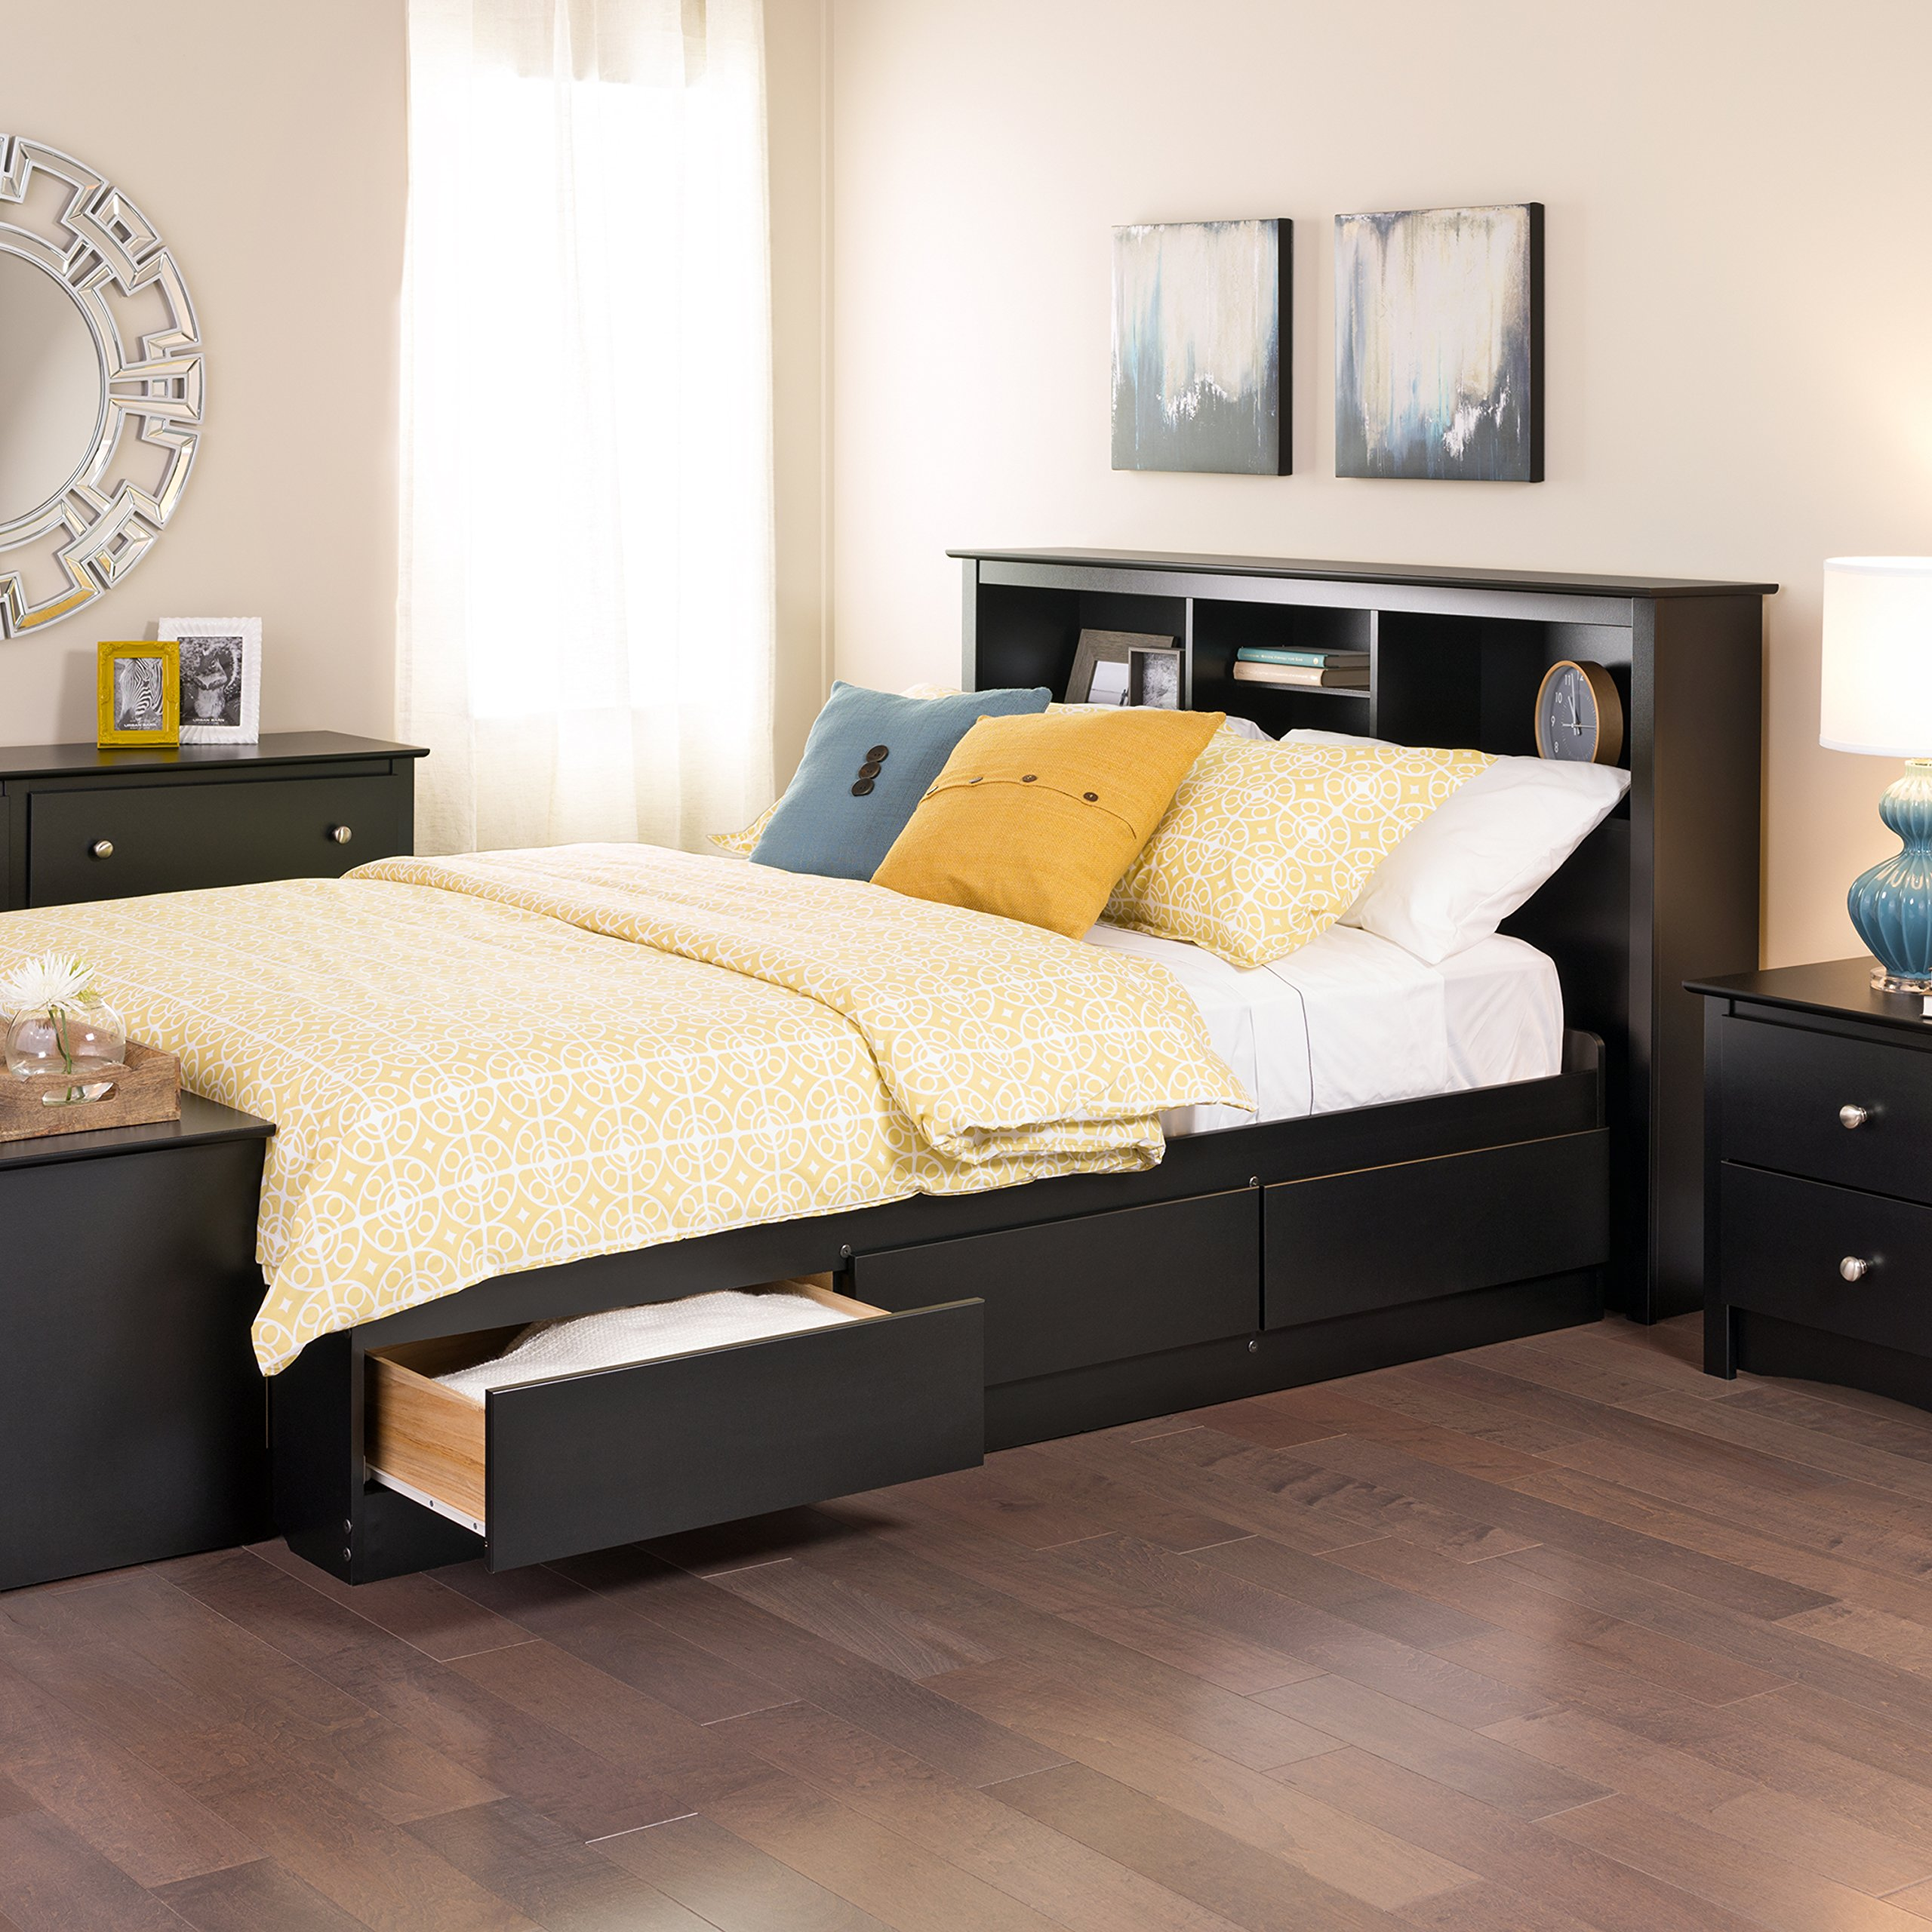 Black Queen Mate's Platform Storage Bed with 6 Drawers by Prepac (Image #3)